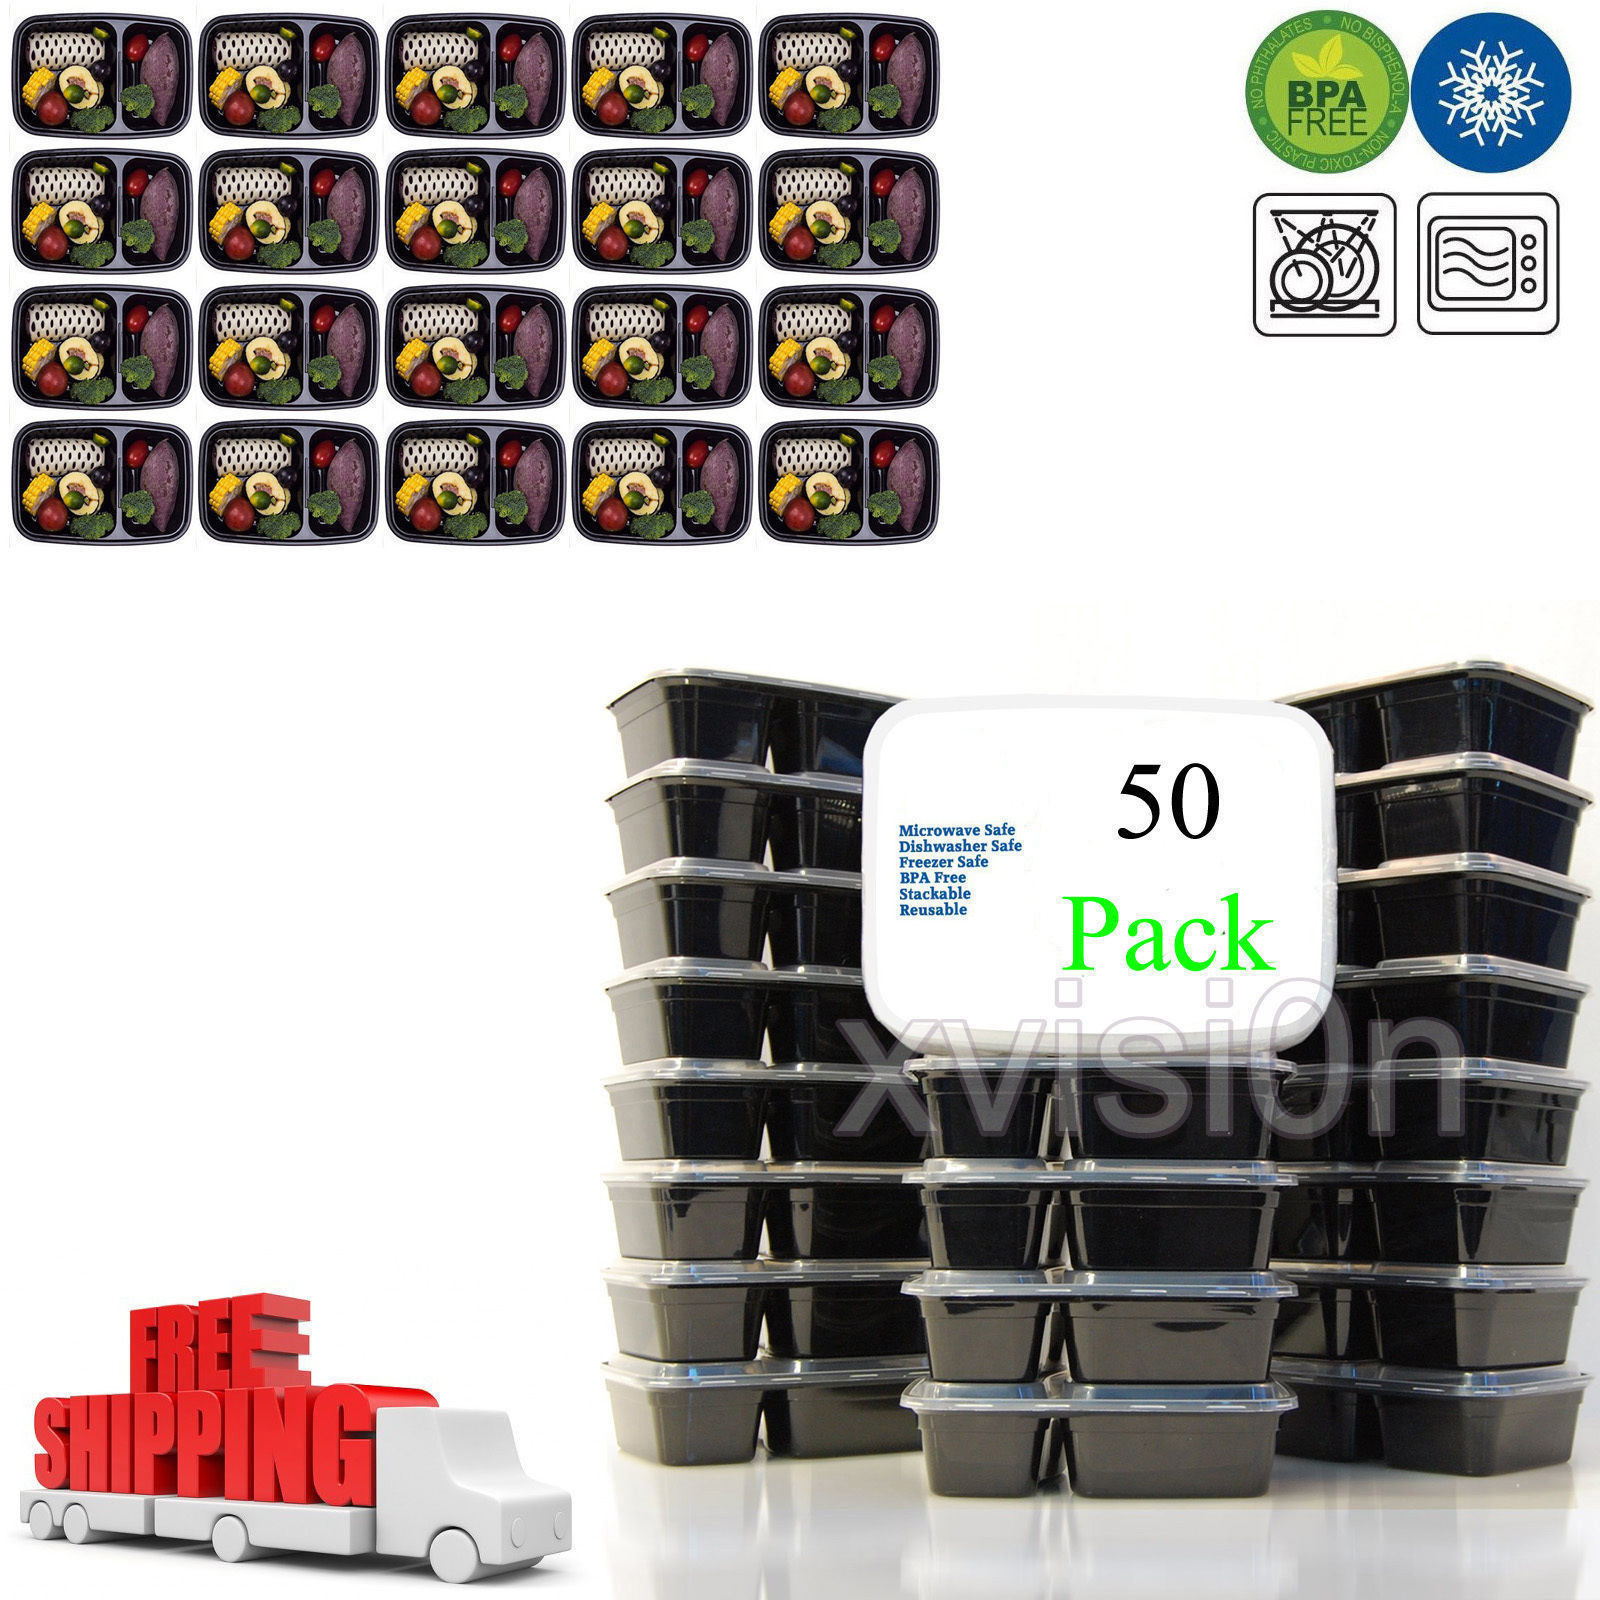 50 Meal Prep Containers Food Storage 2 Compartment Plastic Reusable Microwavable 1